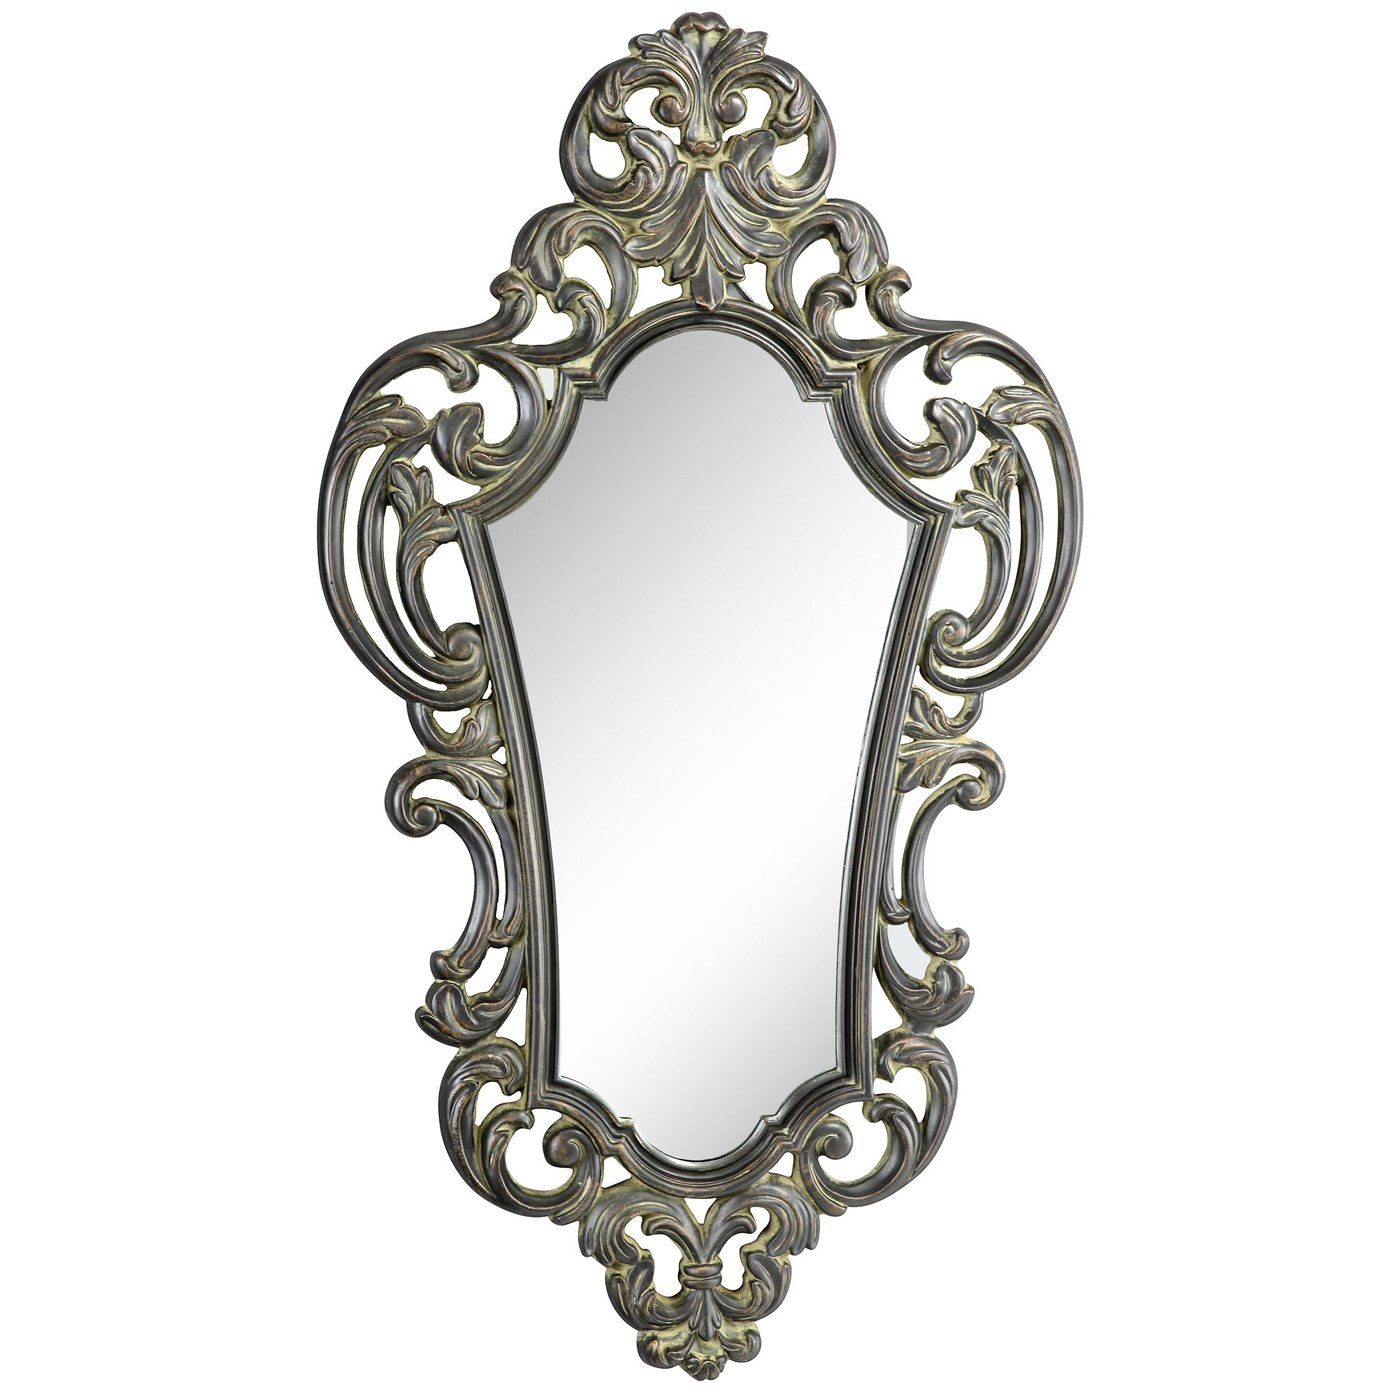 Interior Decoration Bedroom Accessories Ornate Mirrors Pertaining To Ornate Mirrors (Image 8 of 15)